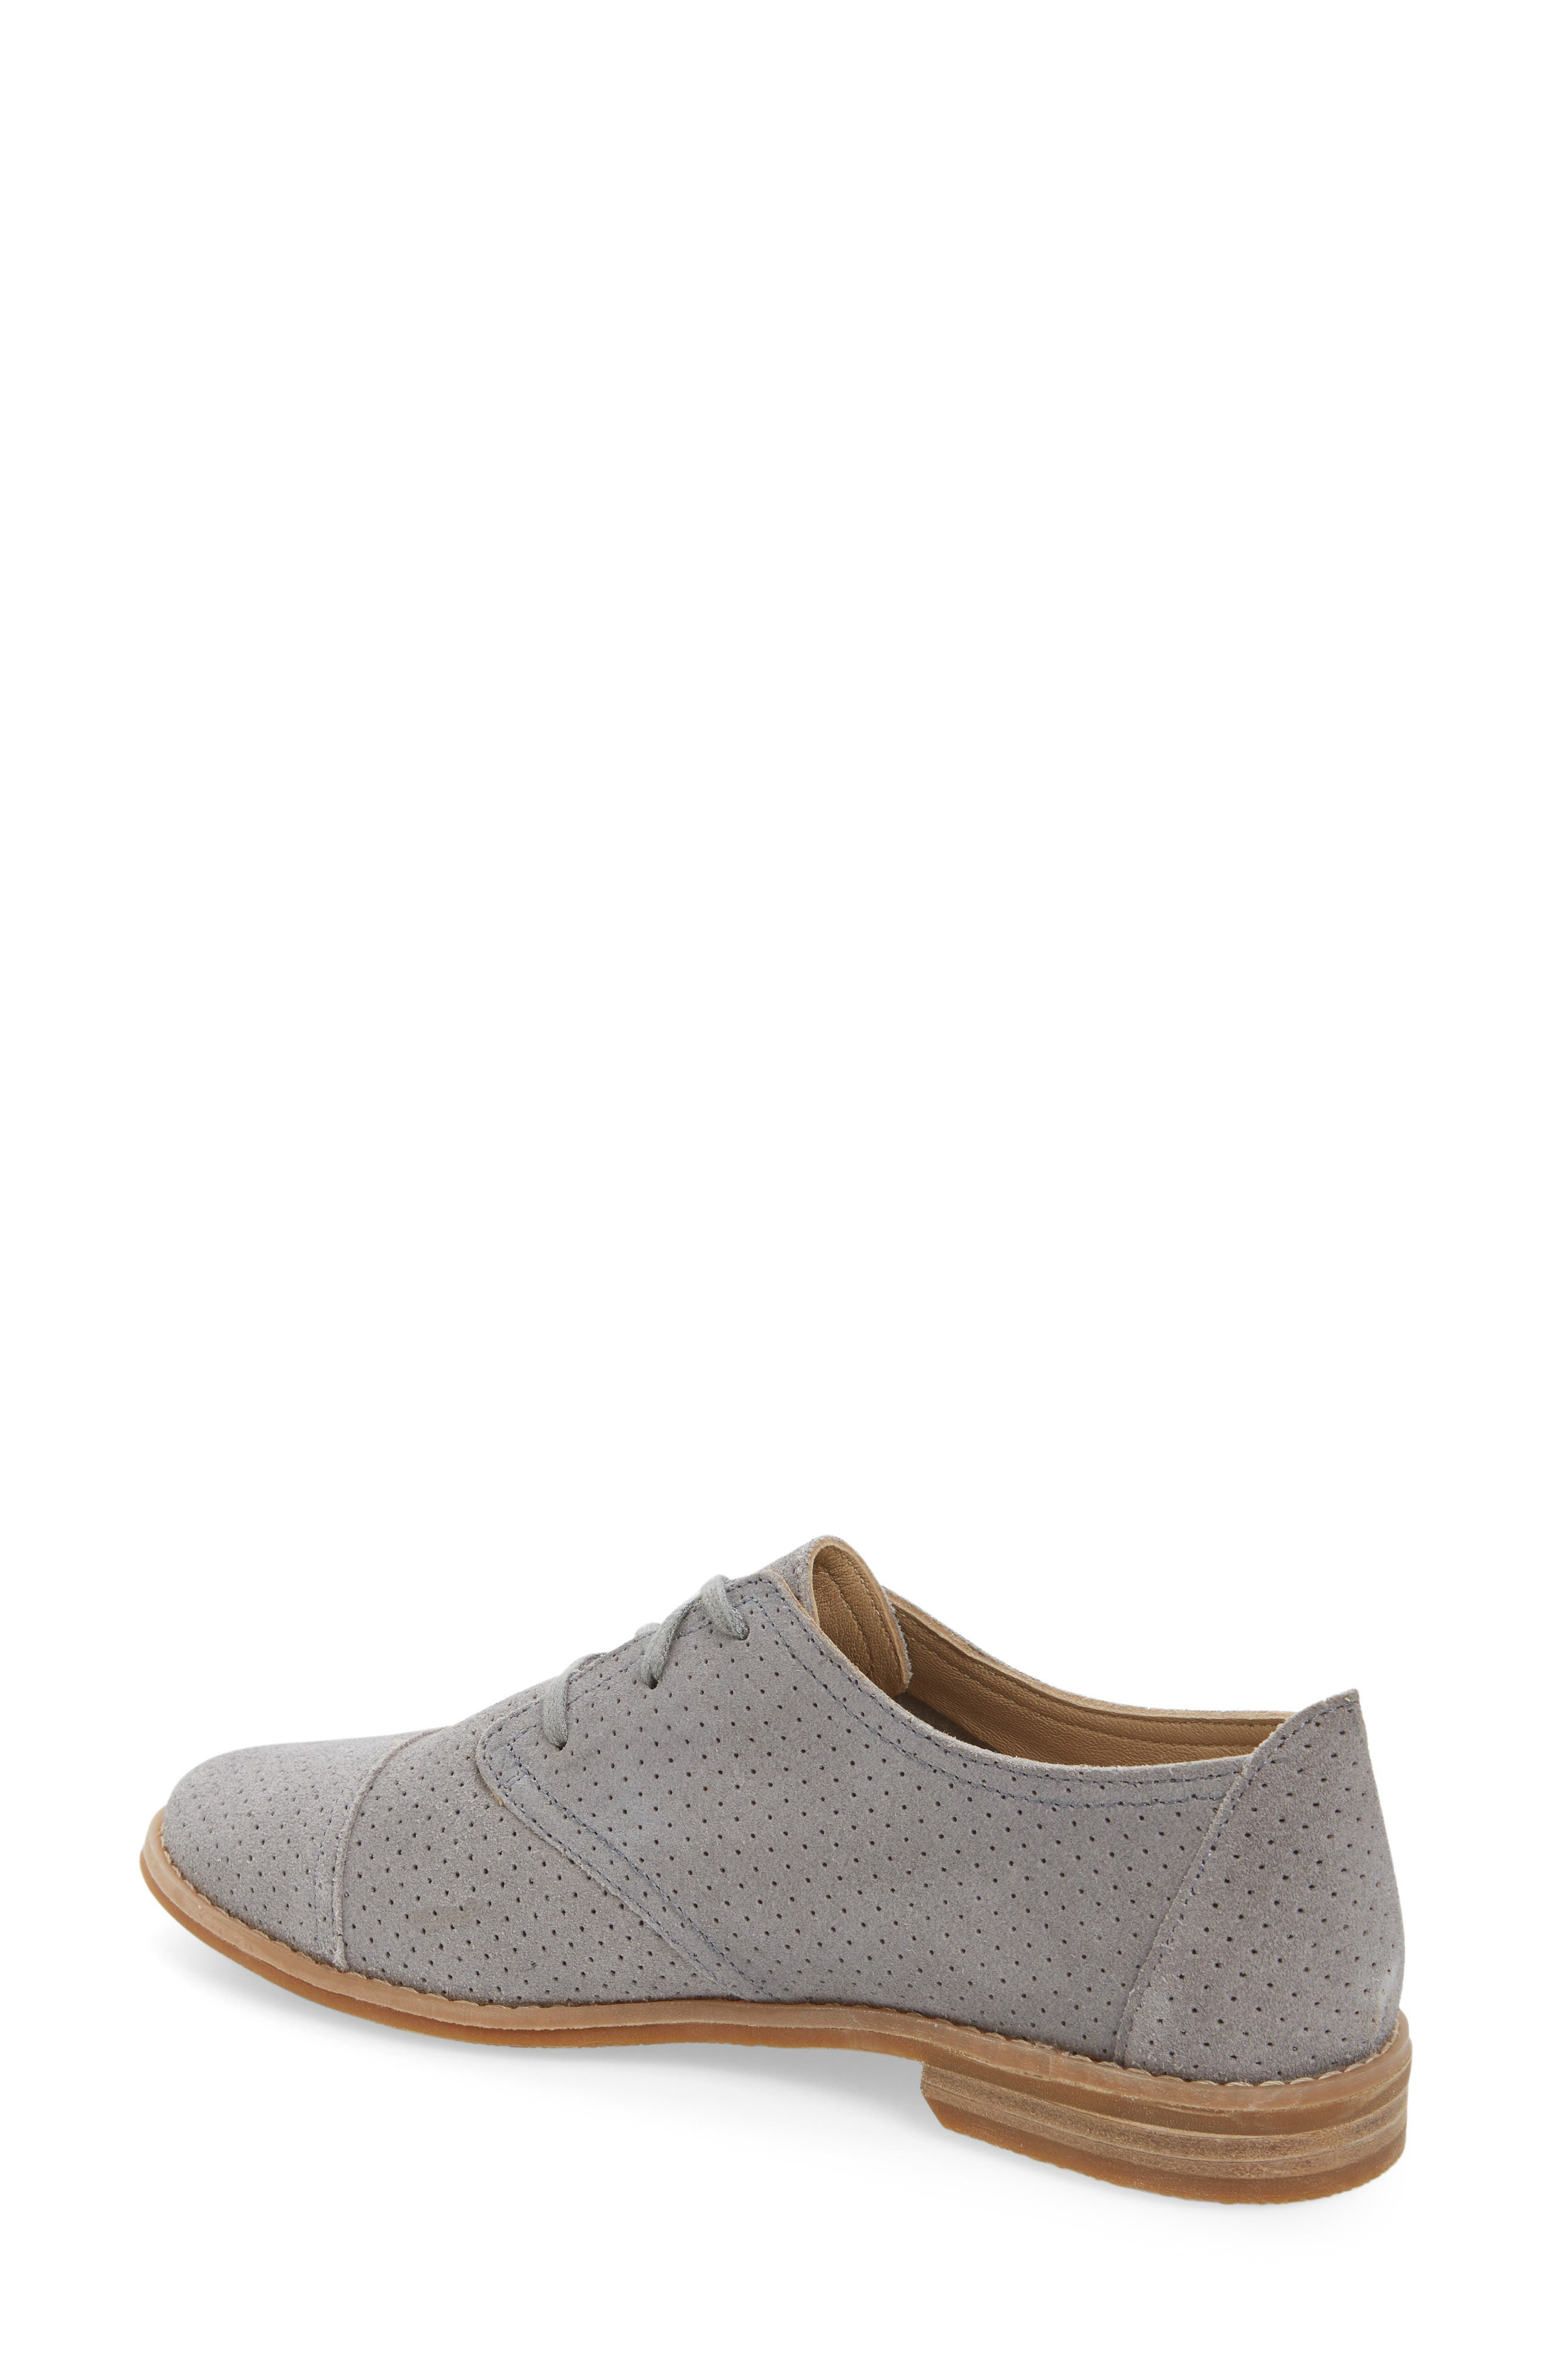 HUSH PUPPIES<SUP>®</SUP>,                             Hush Puppies Aiden Clever Oxford,                             Alternate thumbnail 2, color,                             025